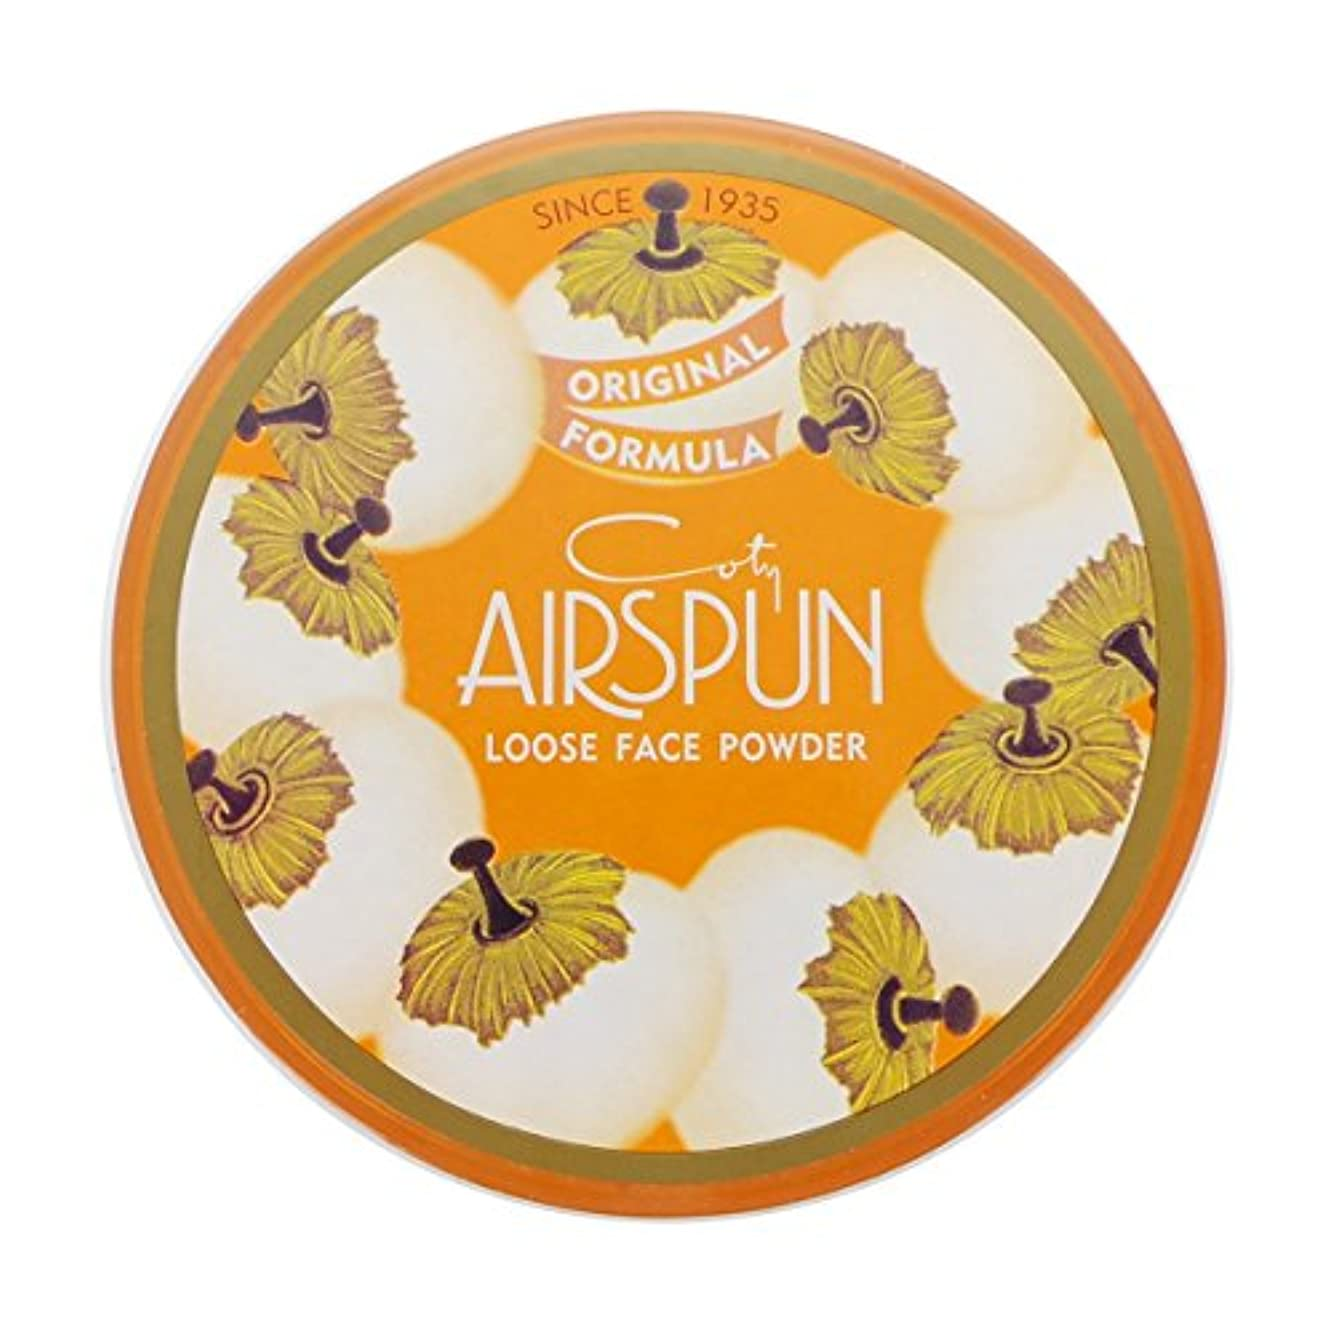 COTY Airspun Loose Face Powder - Translucent Extra Coverage (並行輸入品)